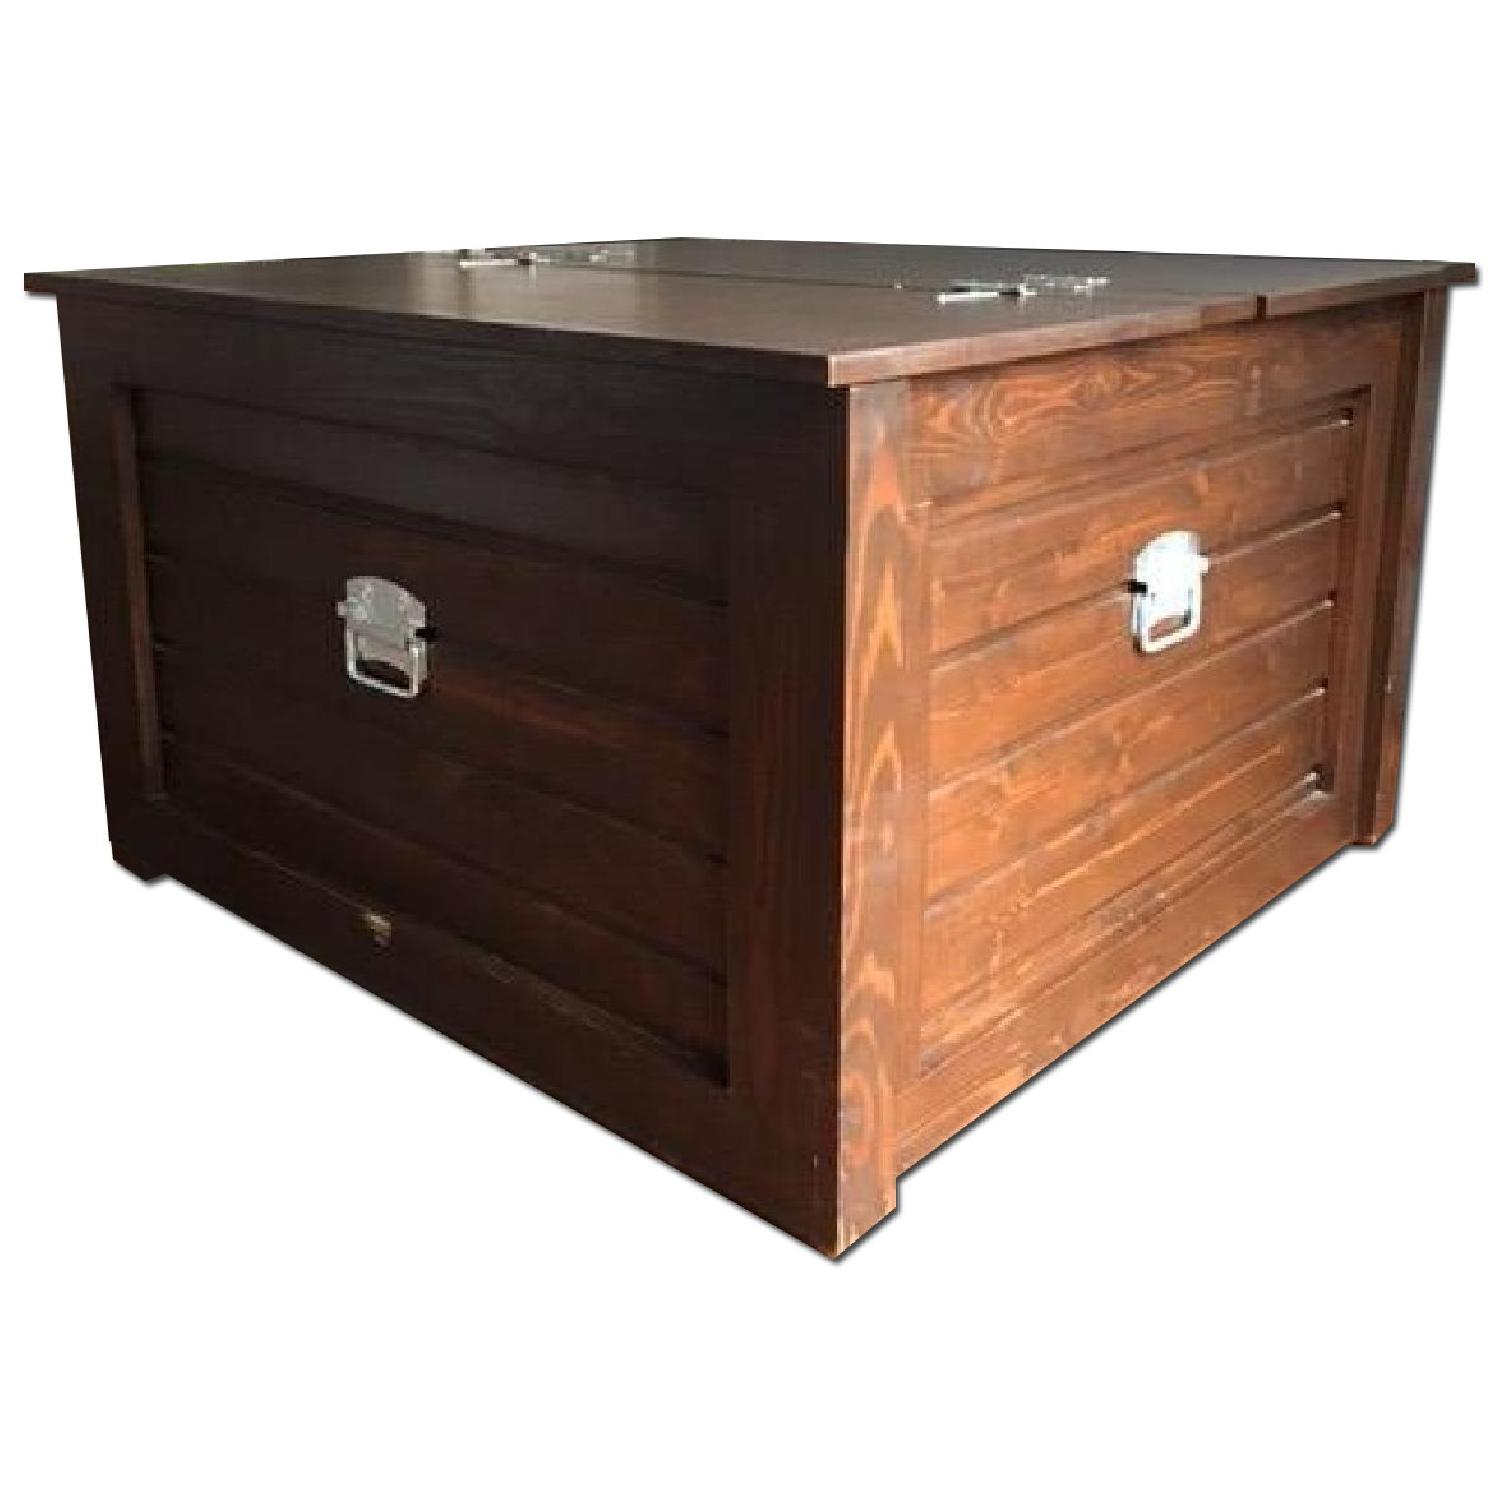 Gothic Cabinet Craft Coffee Table Storage Trunk - image-0